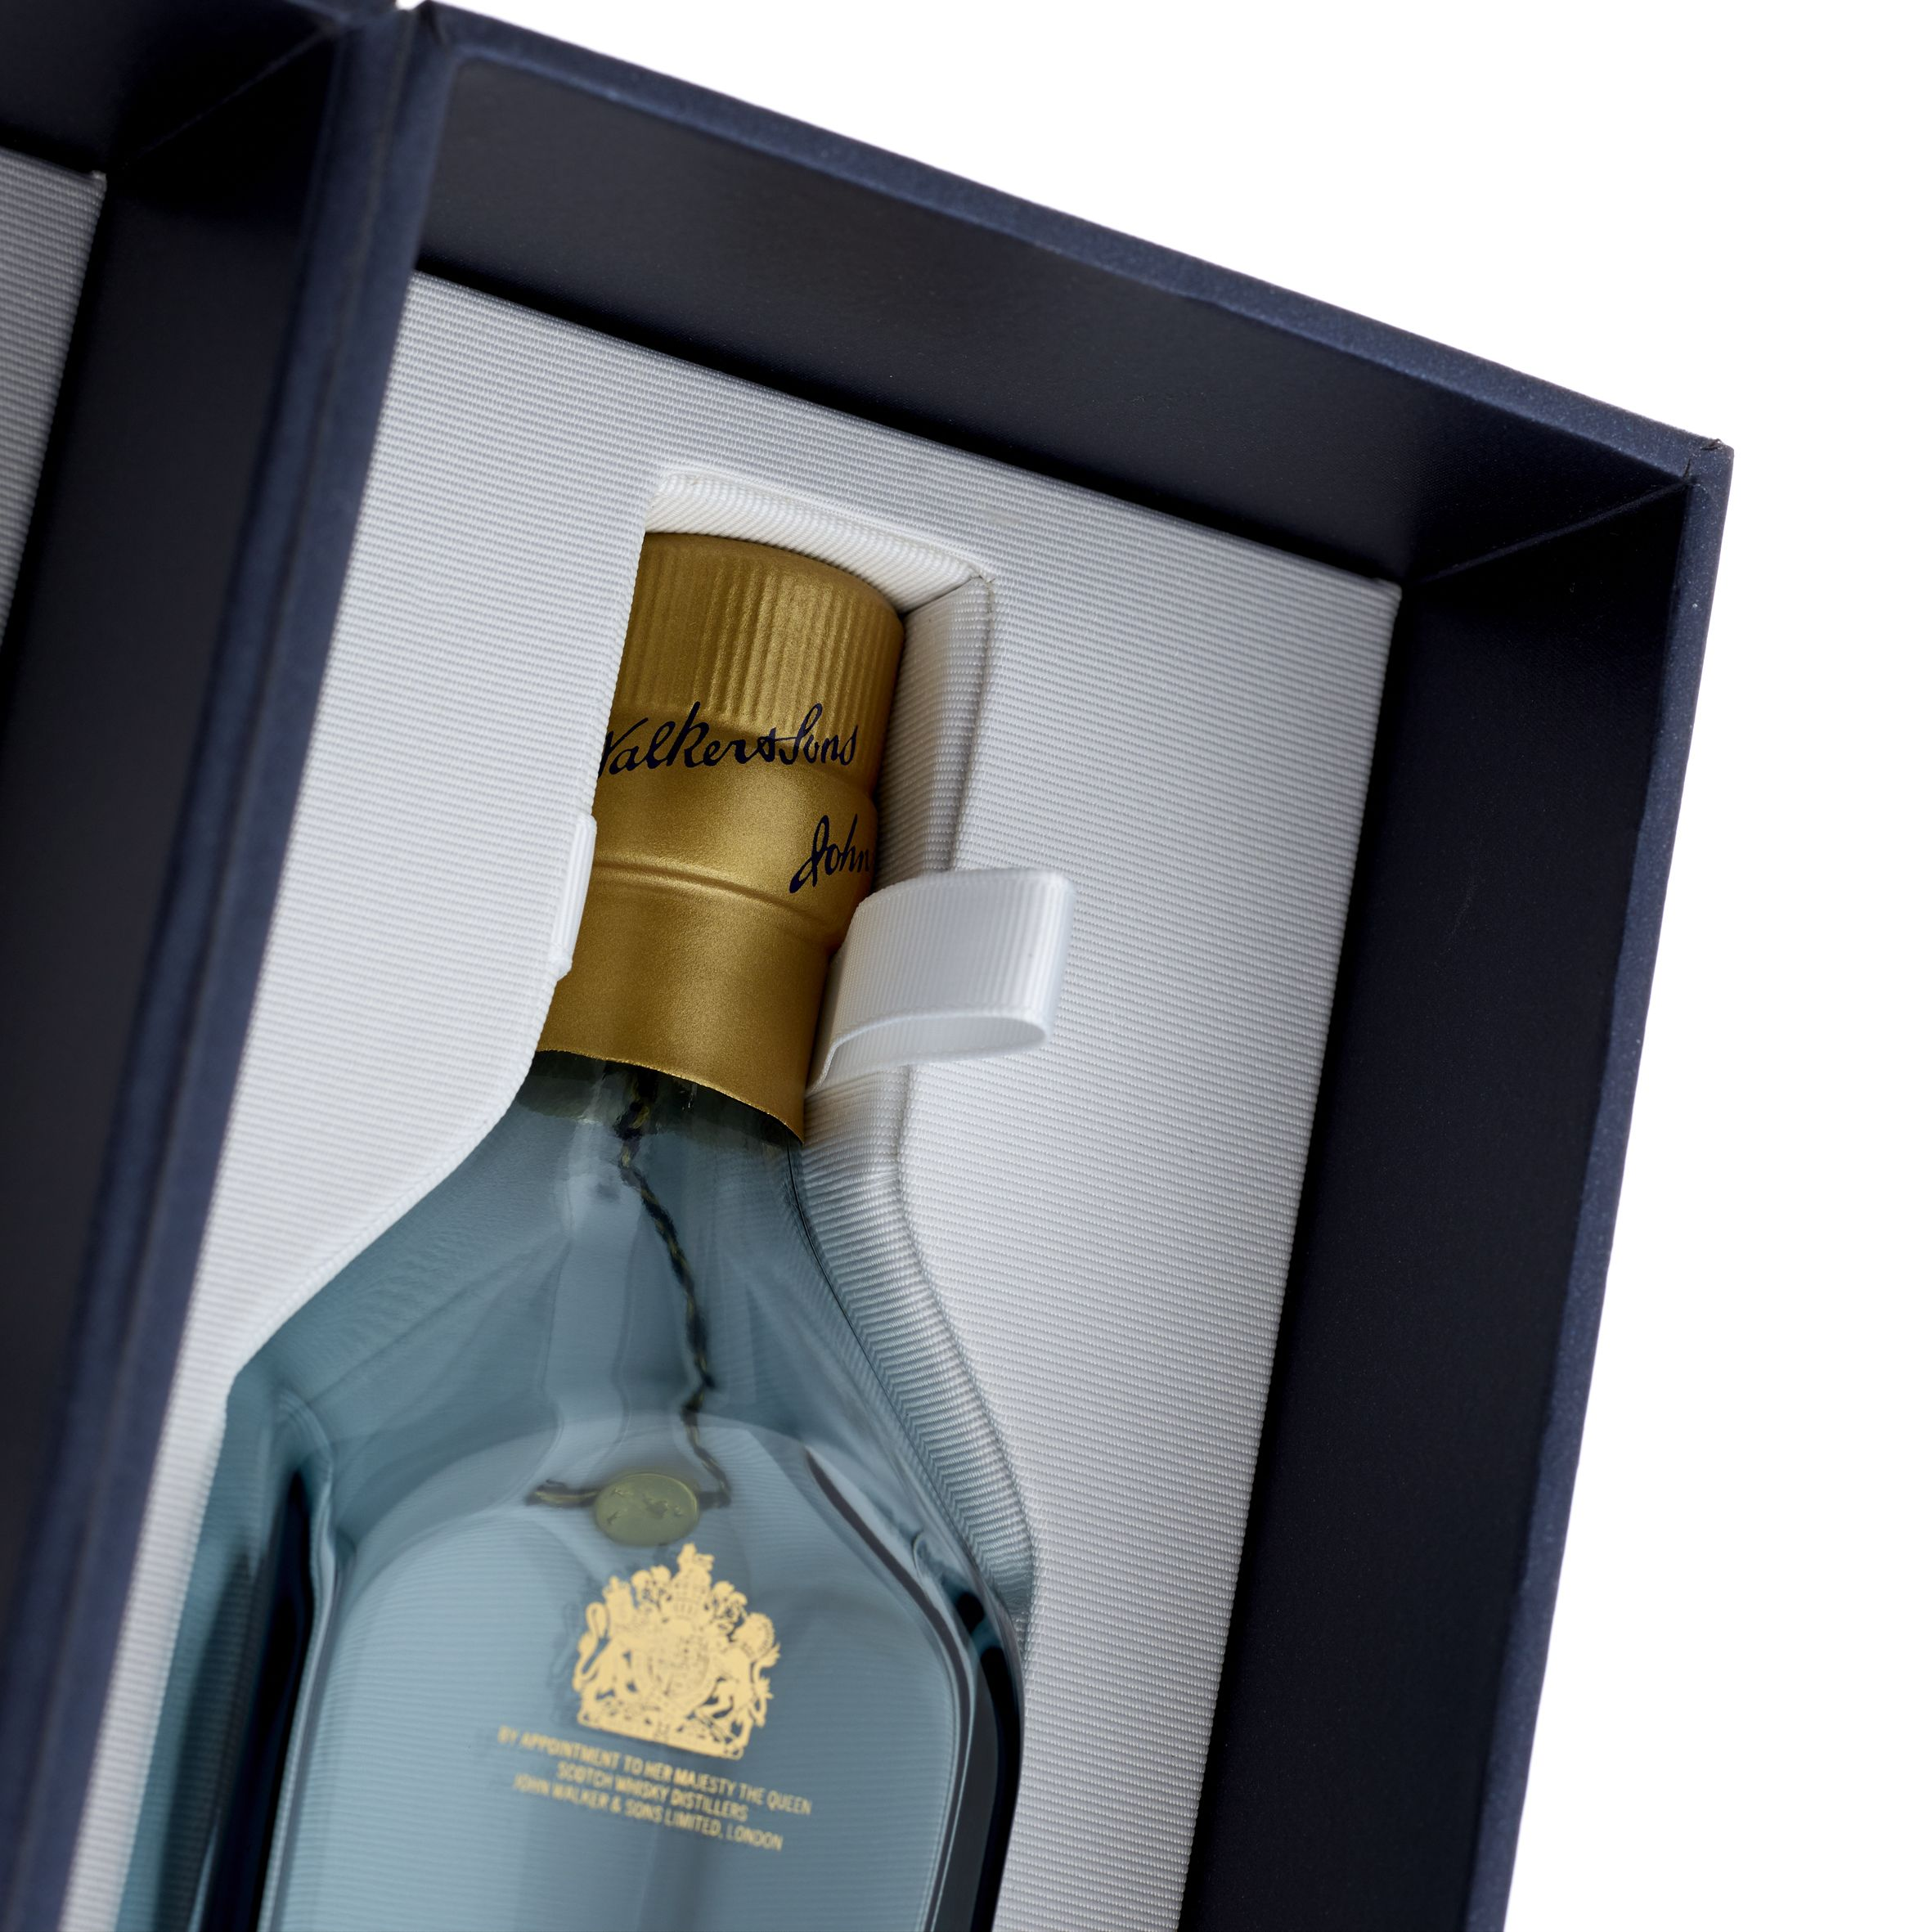 johnnie walker gift set with glasses